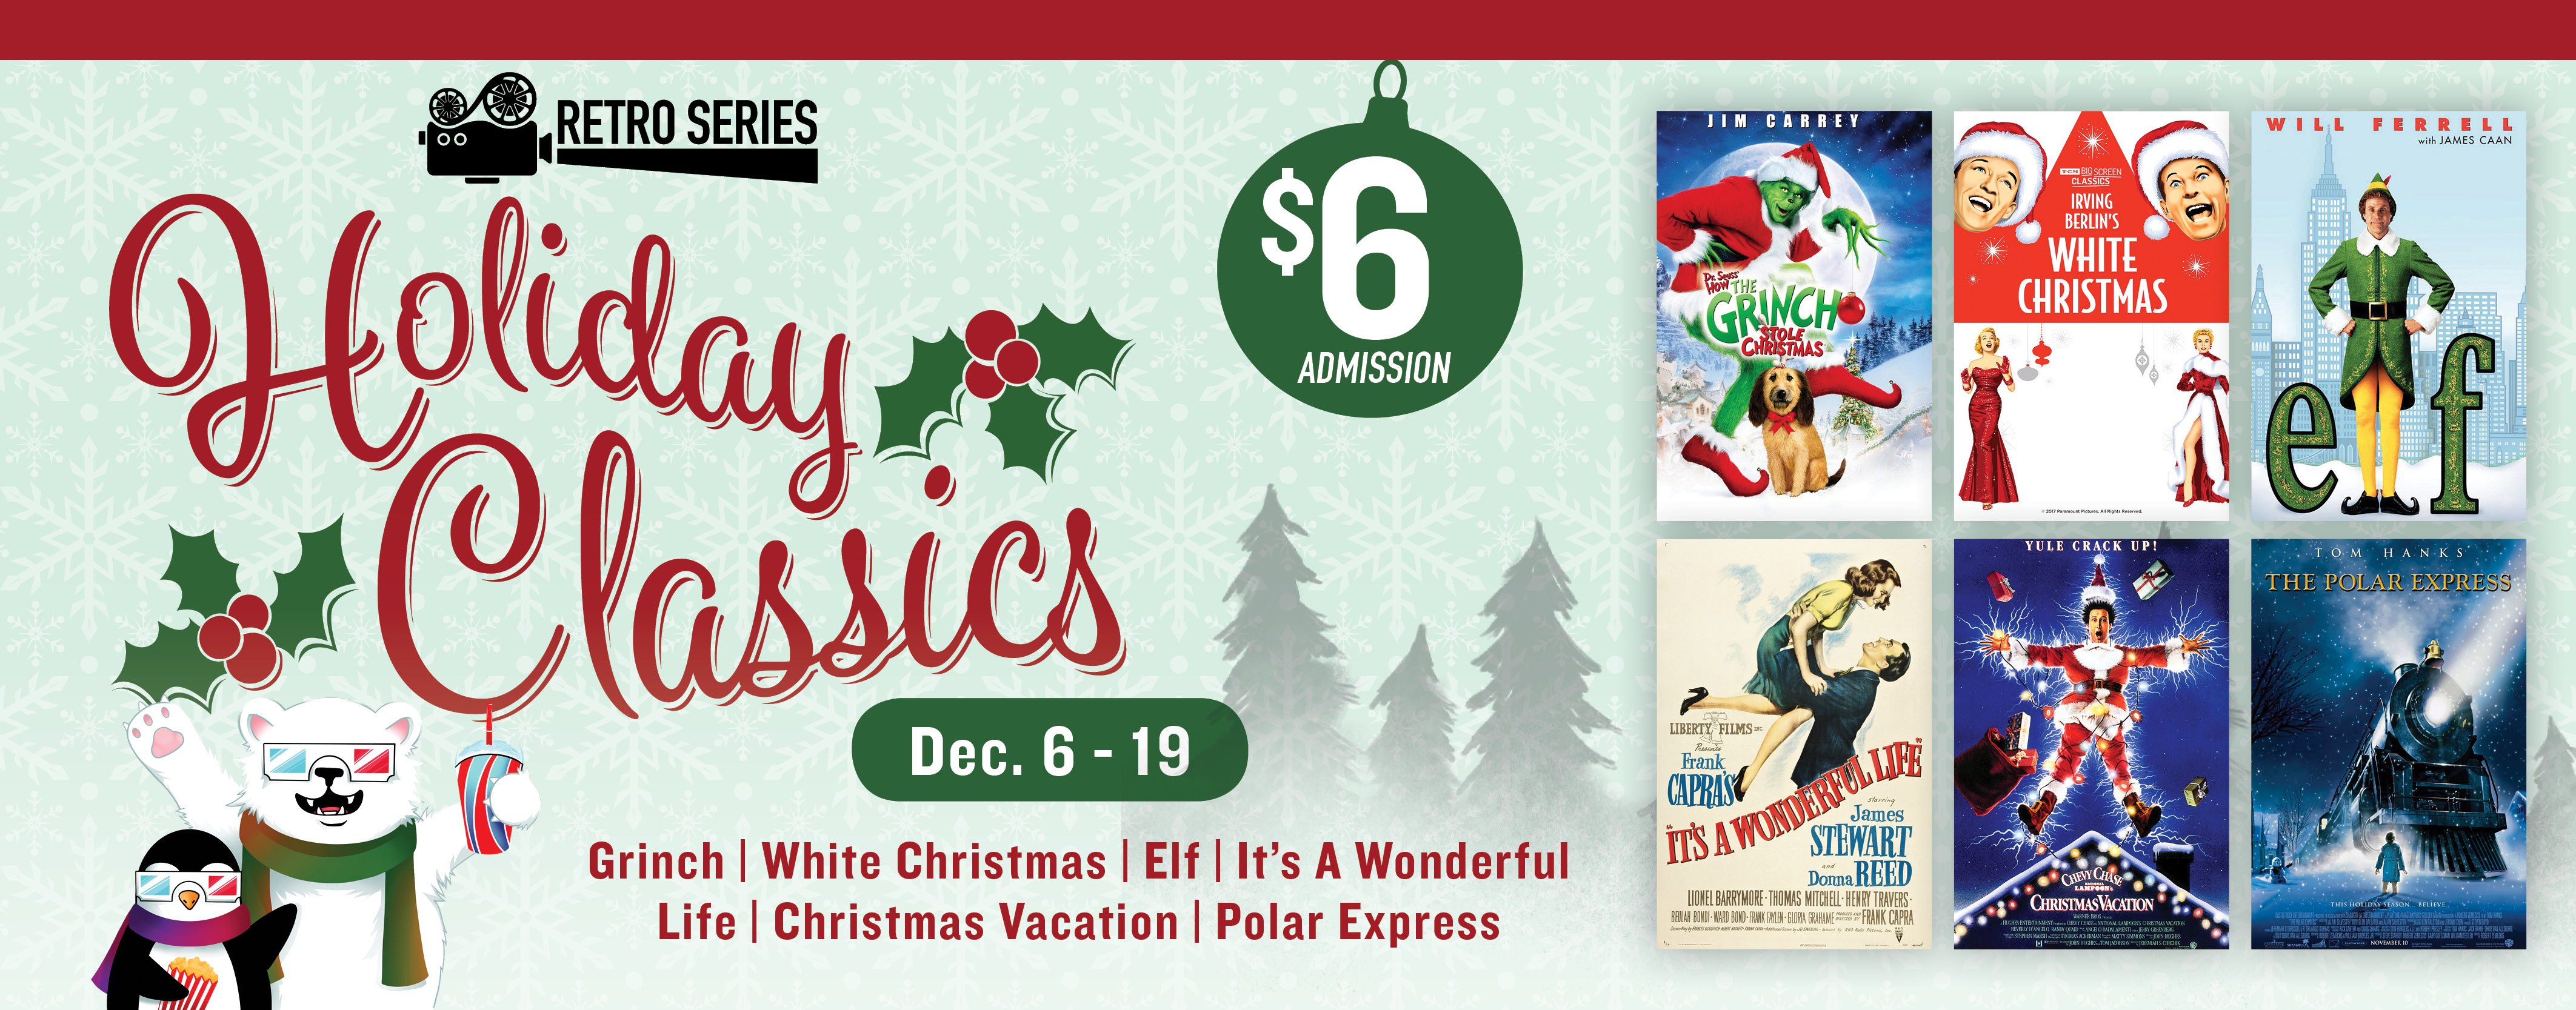 """Dec 21, 2020 Who Wrote The Holiday Classic """"White Christmas""""? Country Club Hills Movie Theatre 